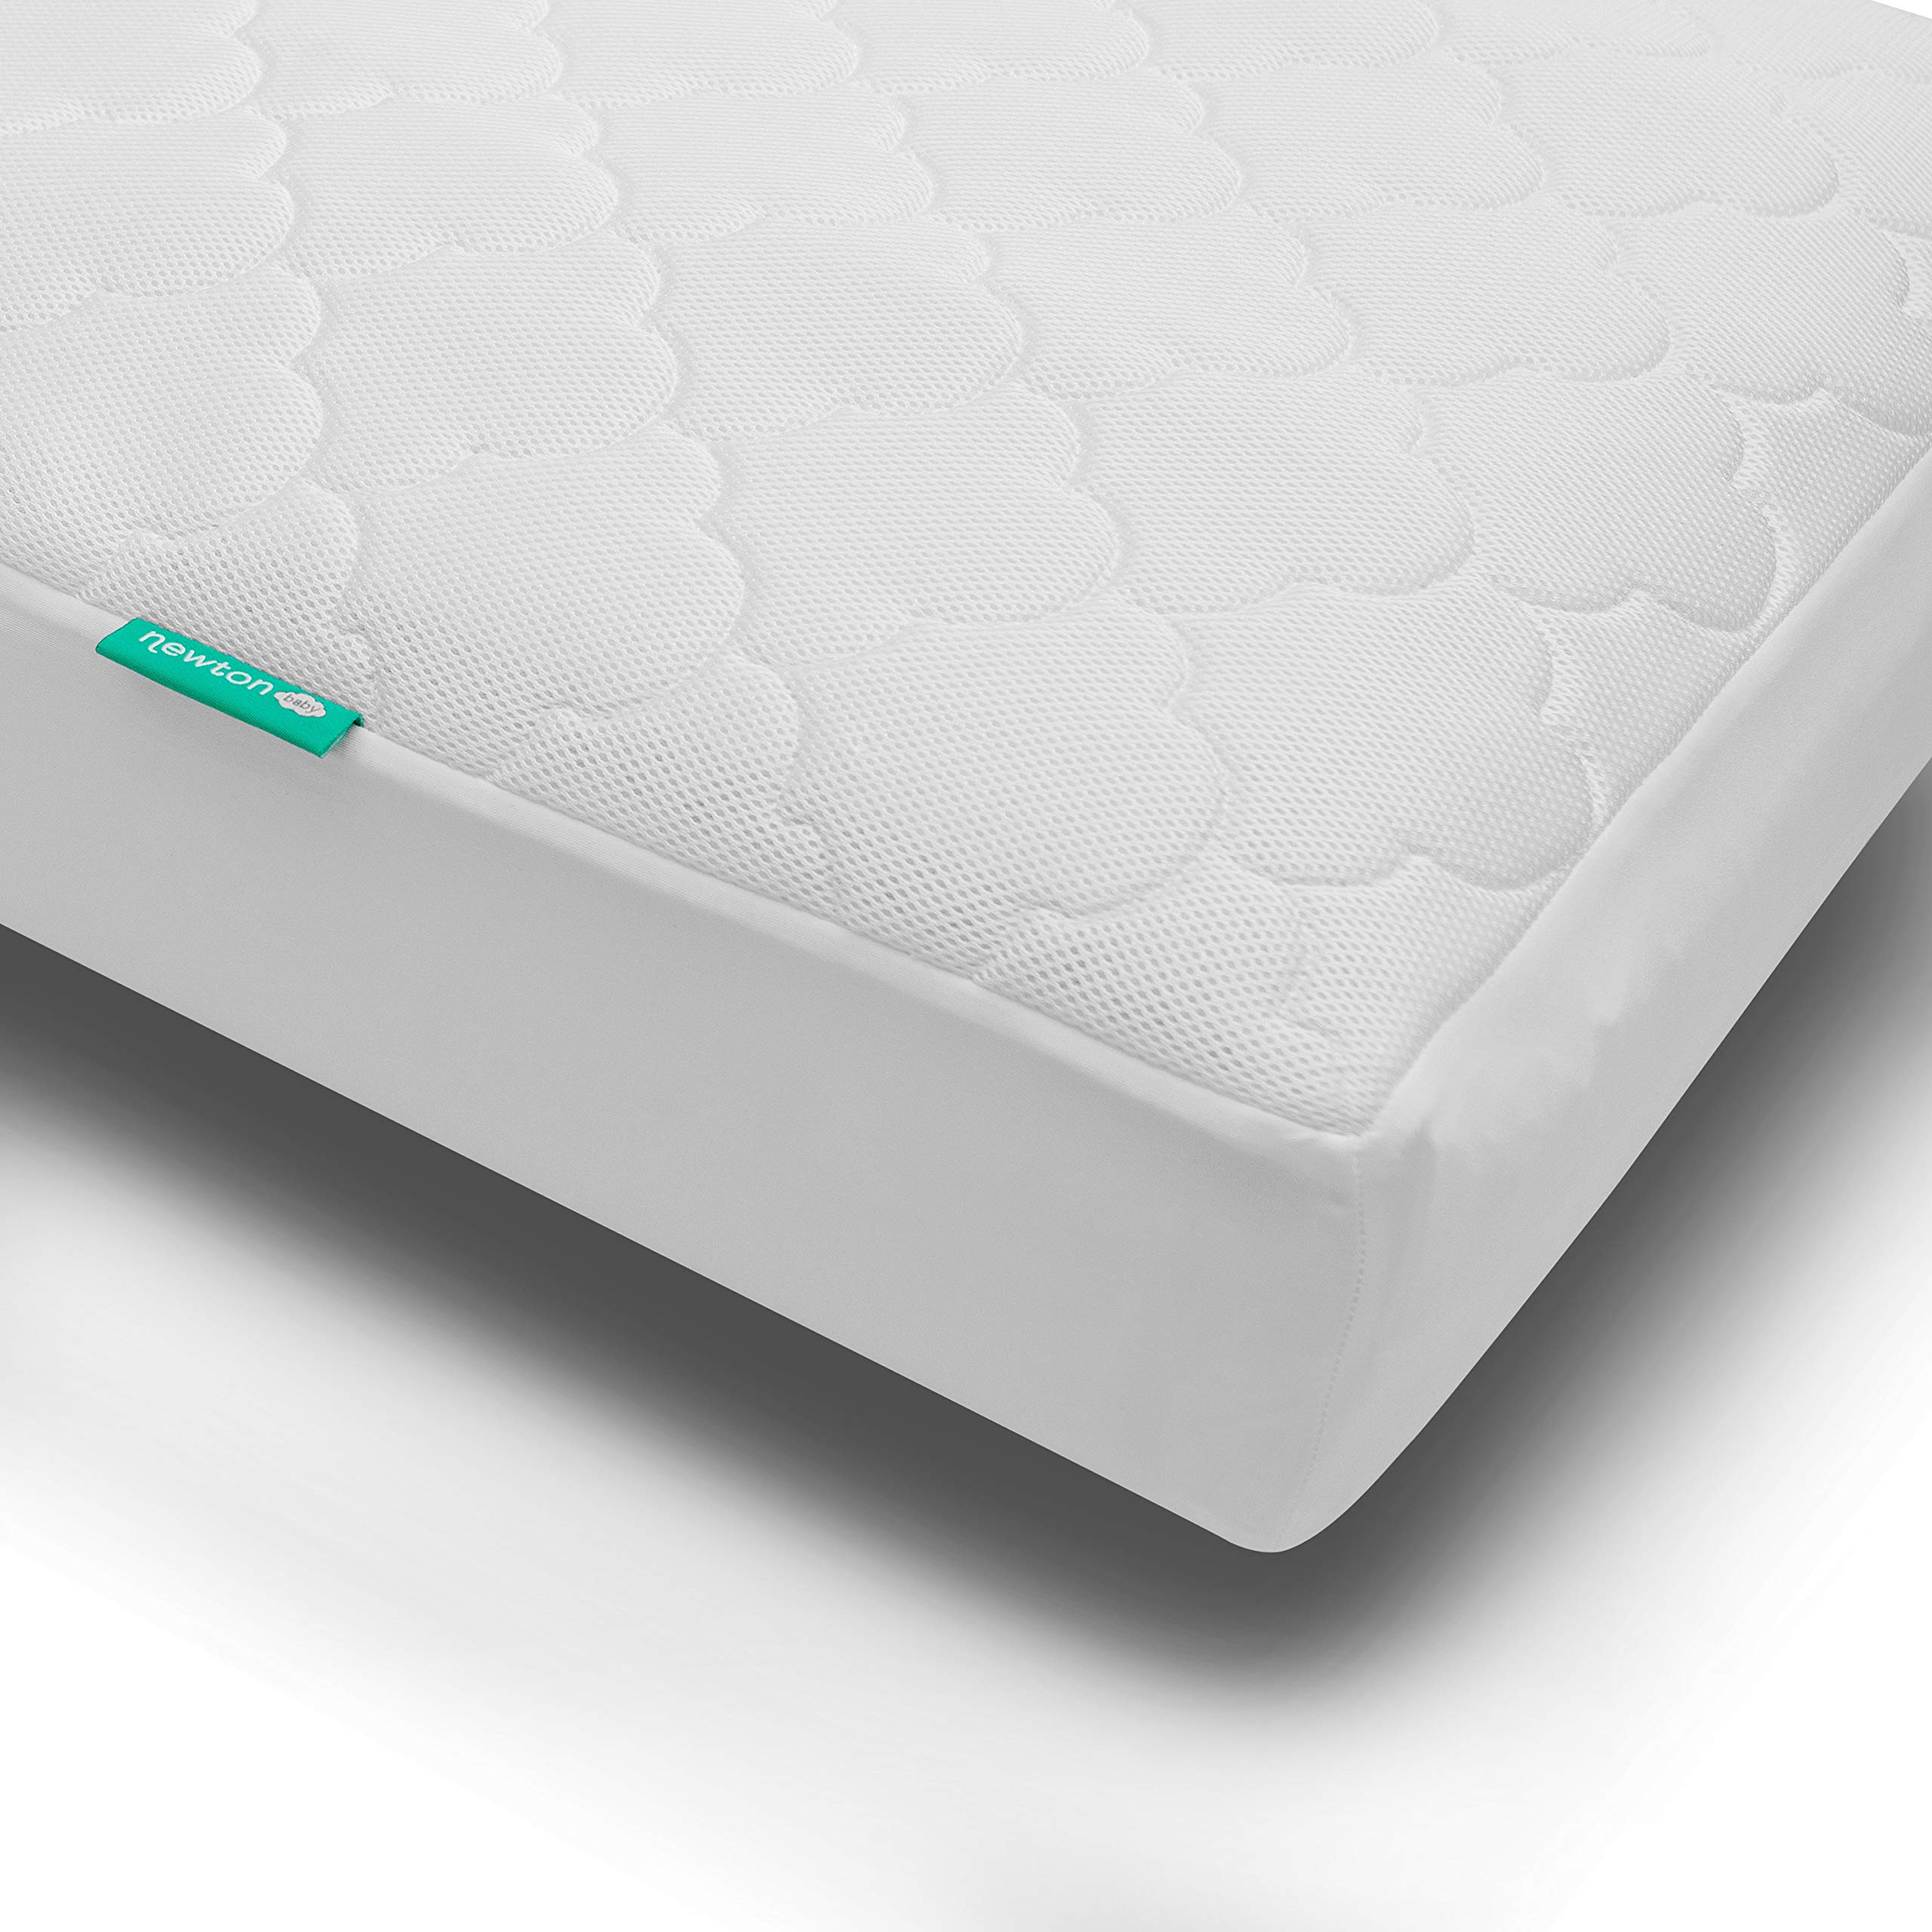 Baby Crib Mattress Critiques Newton Baby Waterproof Crib Mattress Pad Cover | 100% Breathable Proven to  Reduce Suffocation Risk